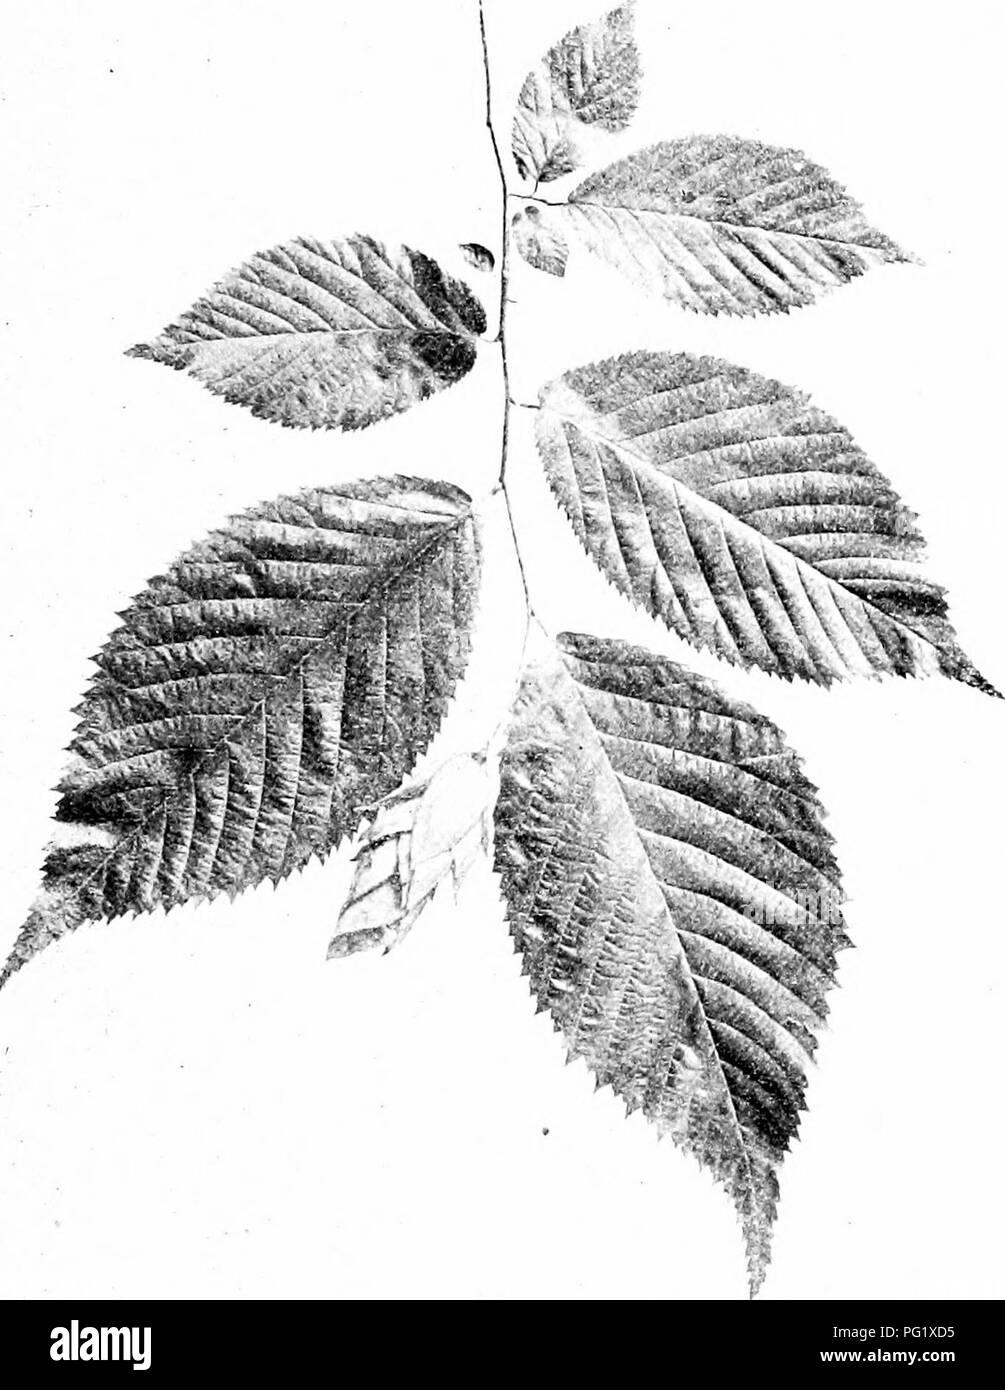 . Our native trees and how to identify them; a popular study of their habits and their peculiarities. Trees. HOP HORNBEAM. Fruiting Spray uf Hop Hornbeam, Ostiya virgunaim. Leaves 3' to 5' long.. Please note that these images are extracted from scanned page images that may have been digitally enhanced for readability - coloration and appearance of these illustrations may not perfectly resemble the original work.. Keeler, Harriet L. (Harriet Louise), 1846-1921. New York, C. Scribner's Sons - Stock Image